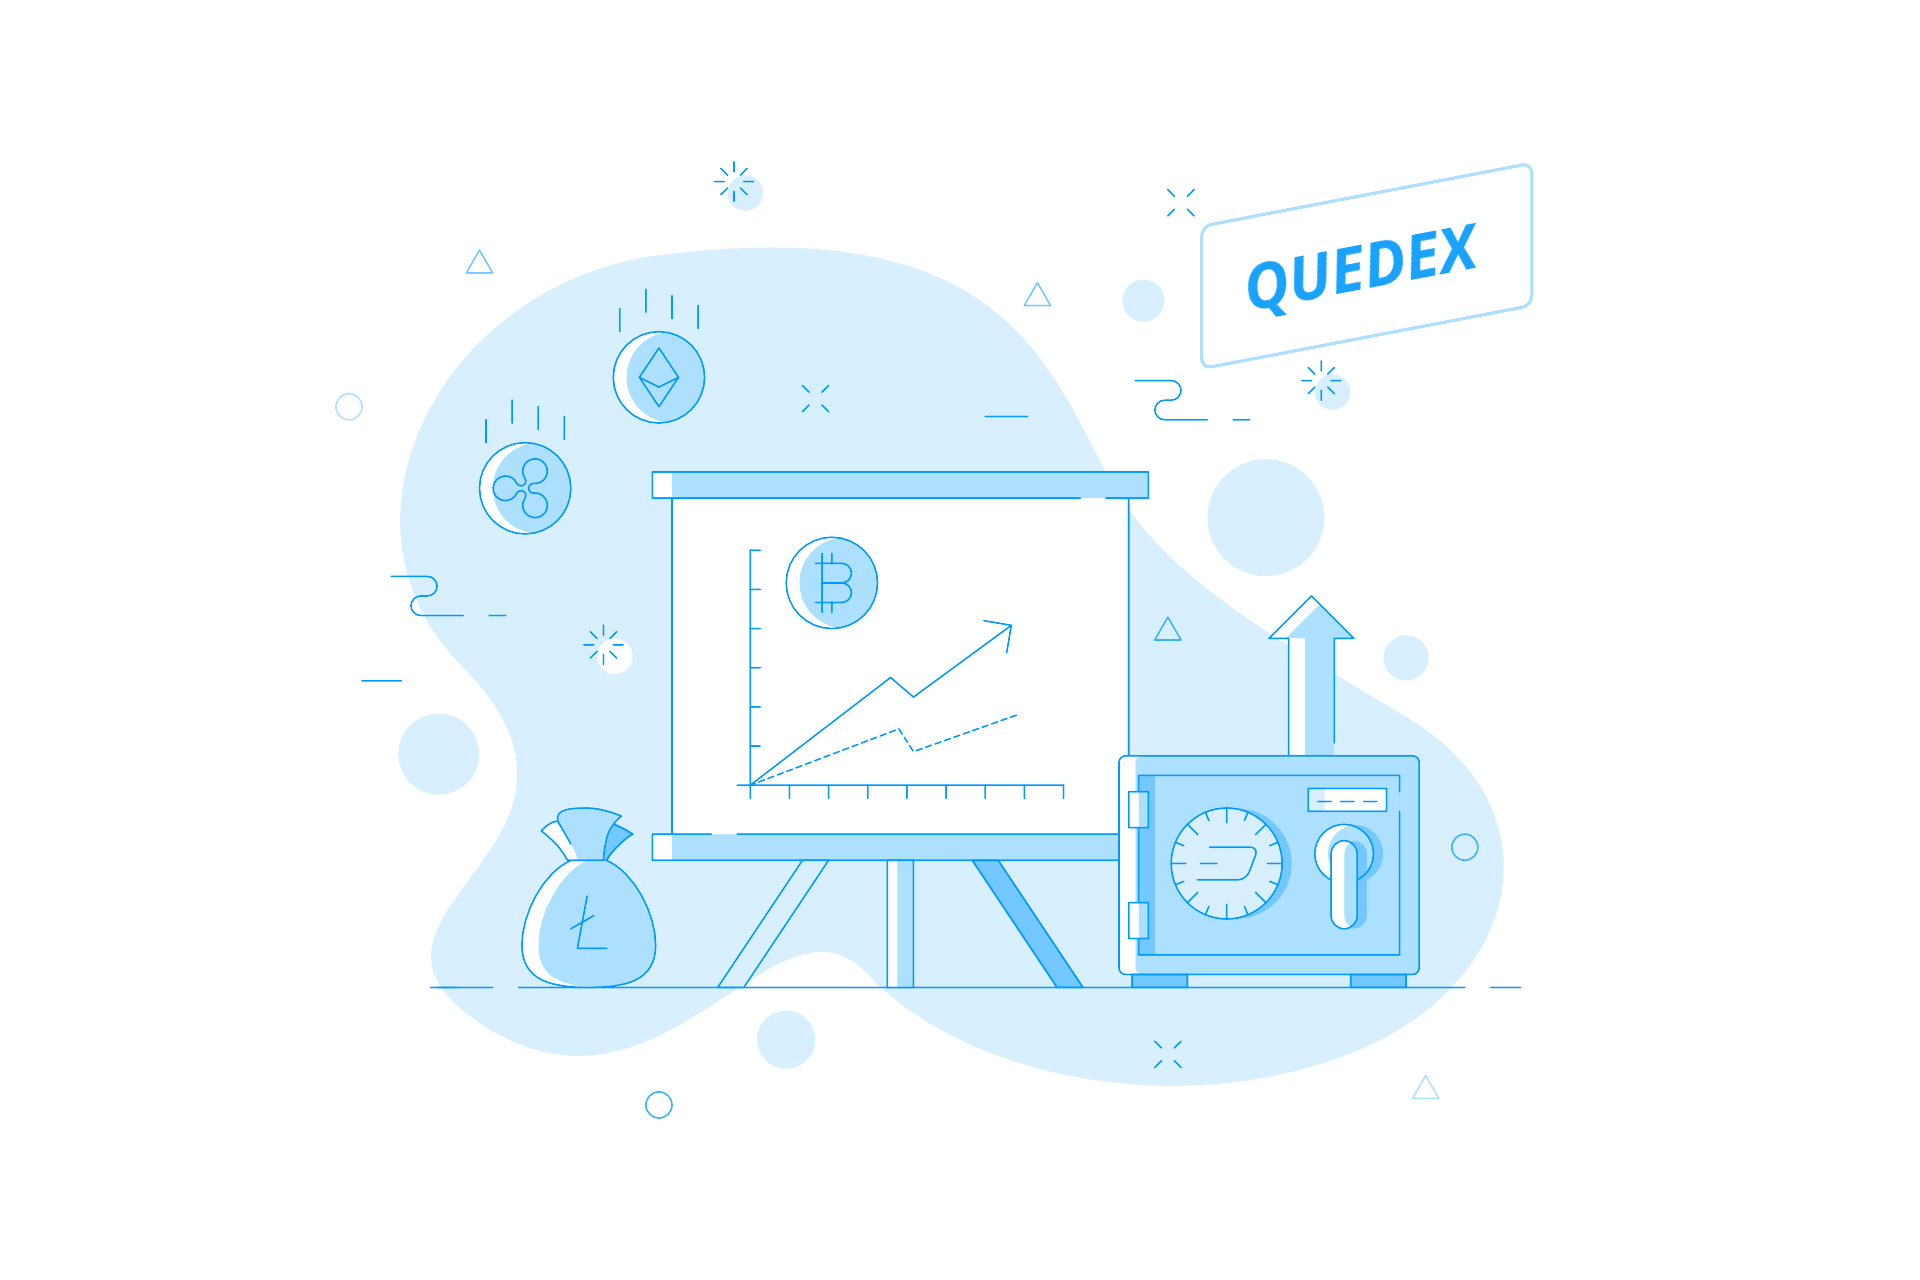 Quedex-EXCHANGE